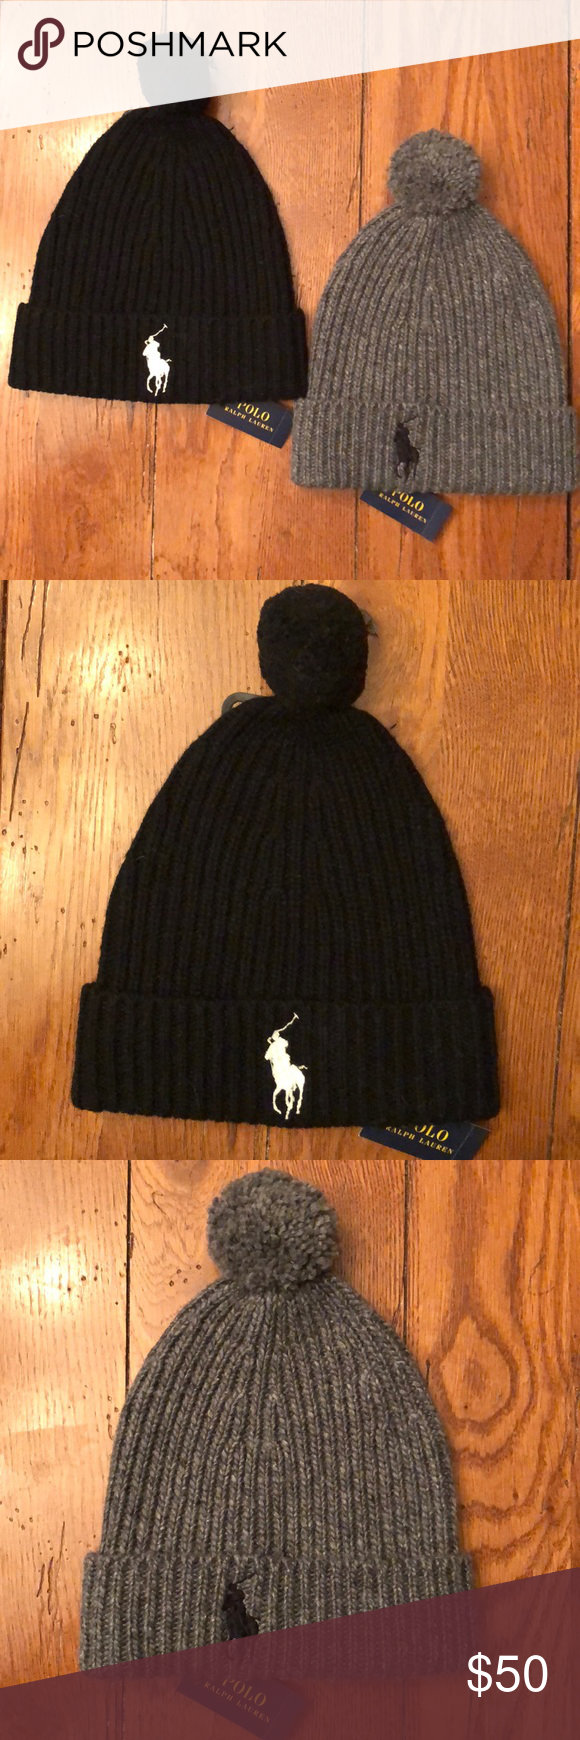 Polo Pom Pom Beanies Special Polo Pom Pom Beanies Special Two Beanie for 50  One Black One Grey Beanie Limited Time Only while supplies last Polo by  Ralph ... 77219fedba4